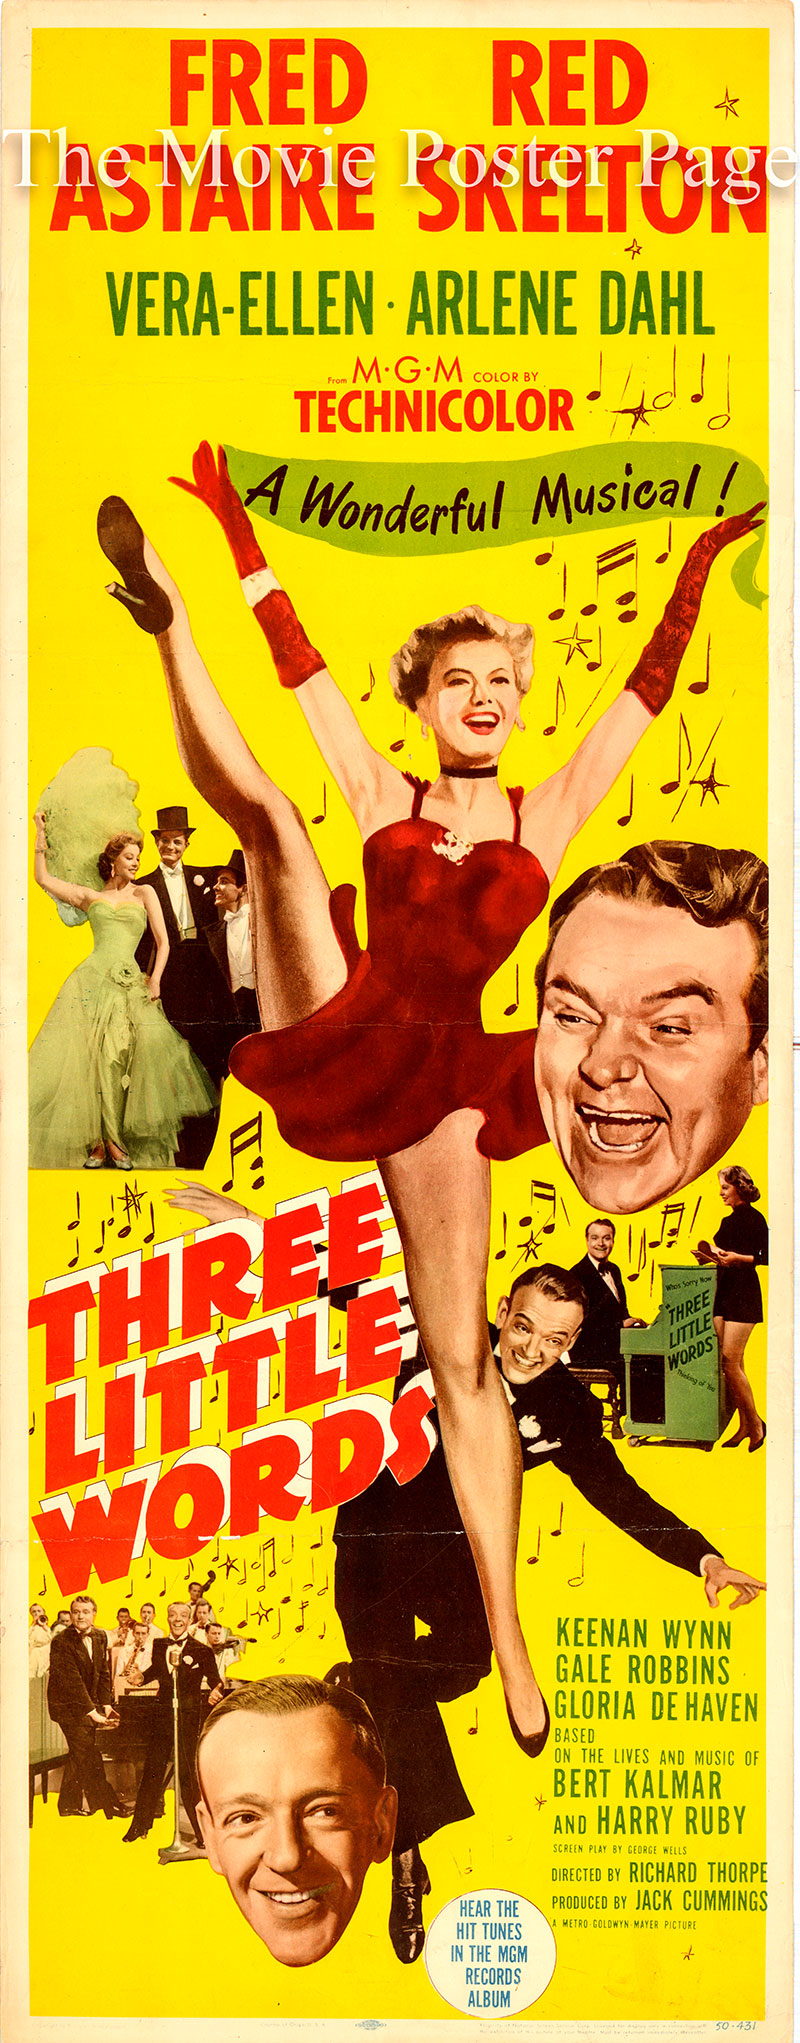 Pictured is a US insert poster for the 1950 Richard Thorpe film Three Little Words starring Fred Astaire as Bert Kalmar.